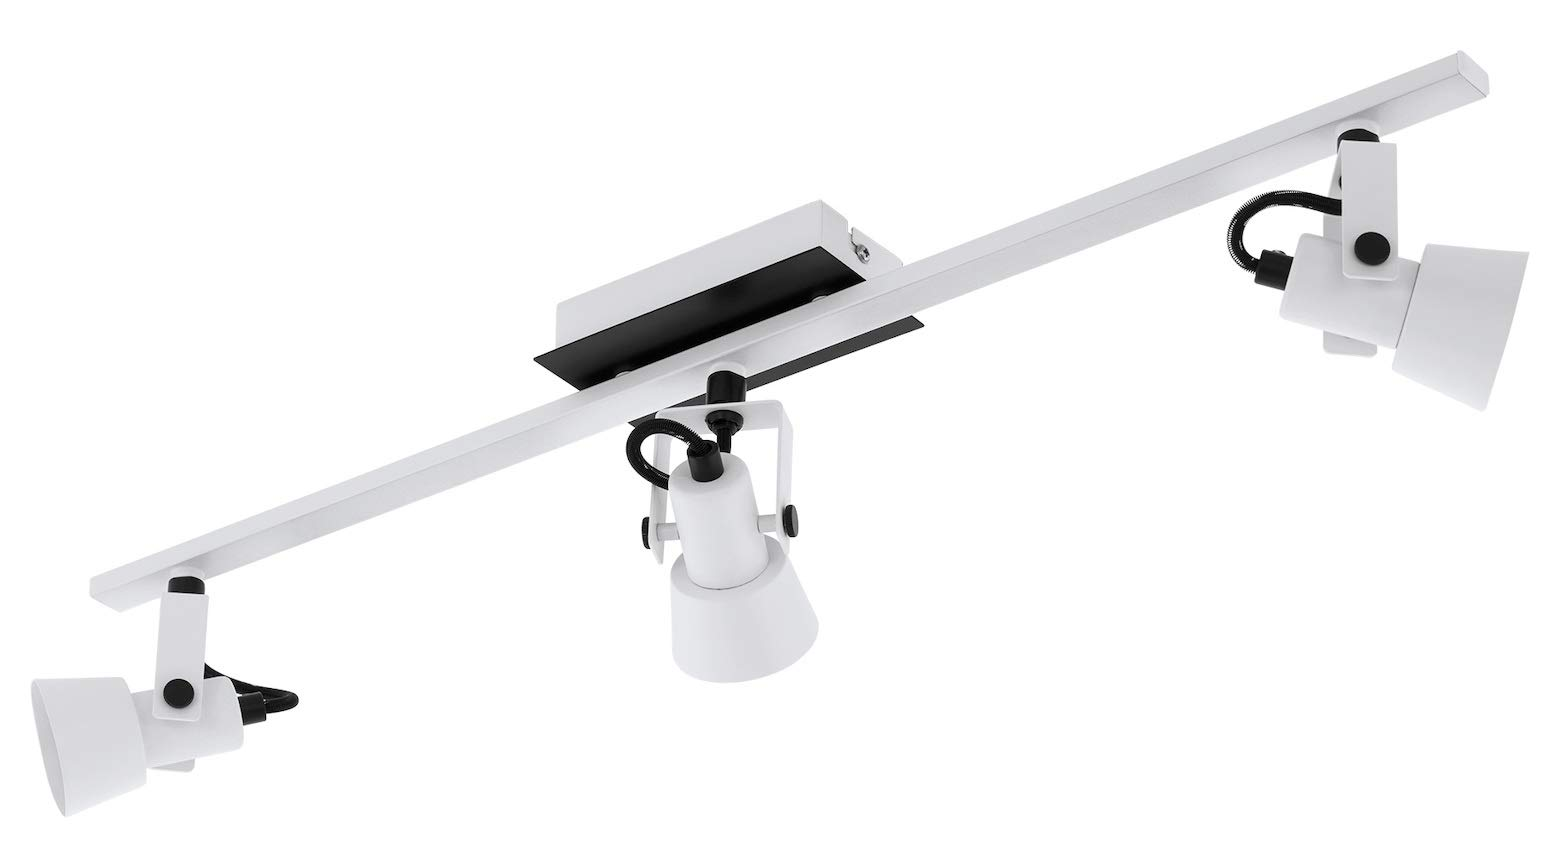 Trillo 3-Light Track Light in White & Black